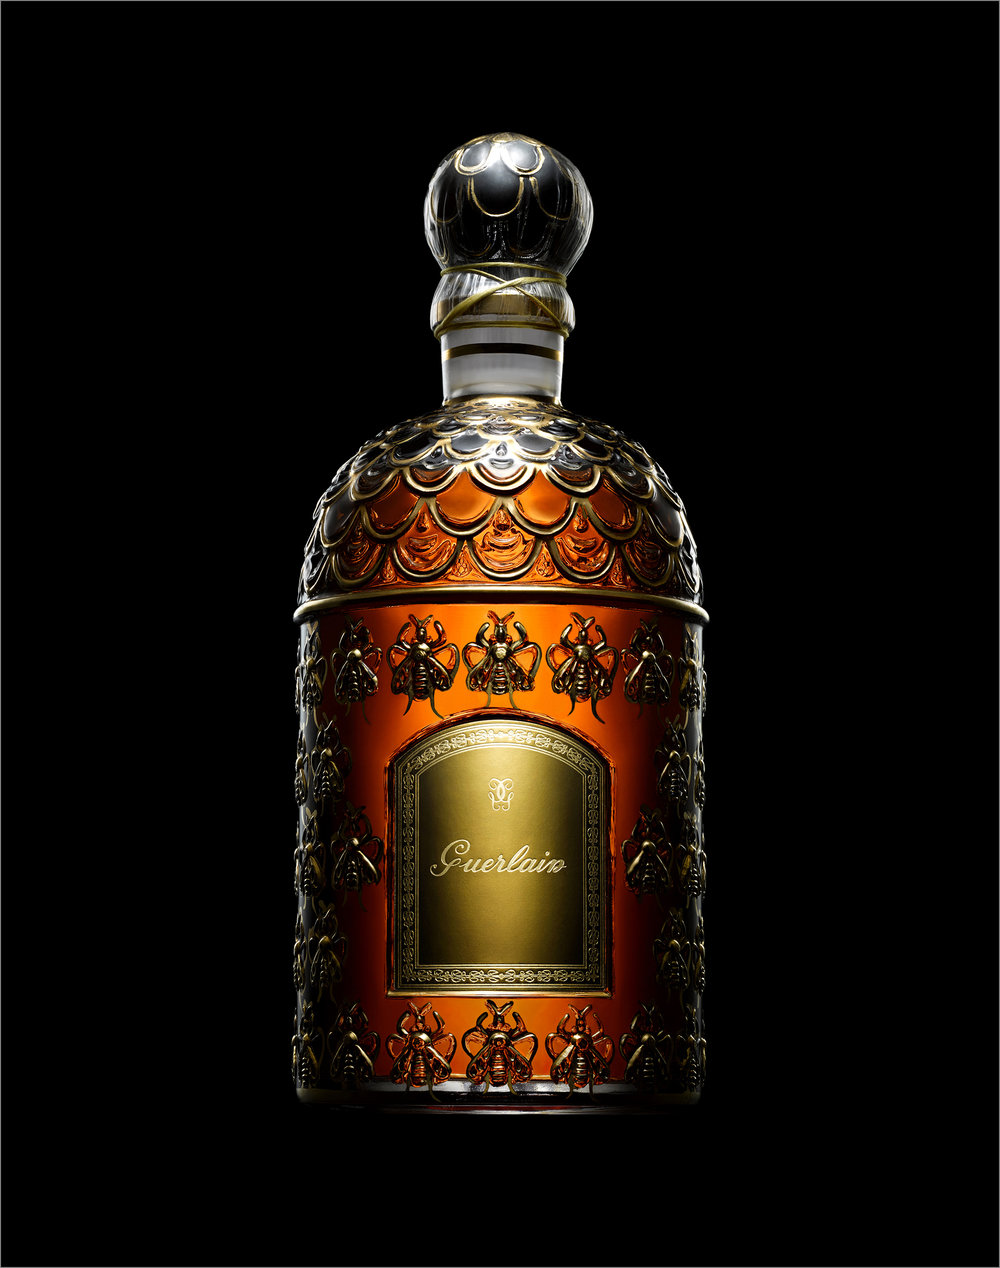 Guerlain 160th Anniversary Bottle copy.jpg